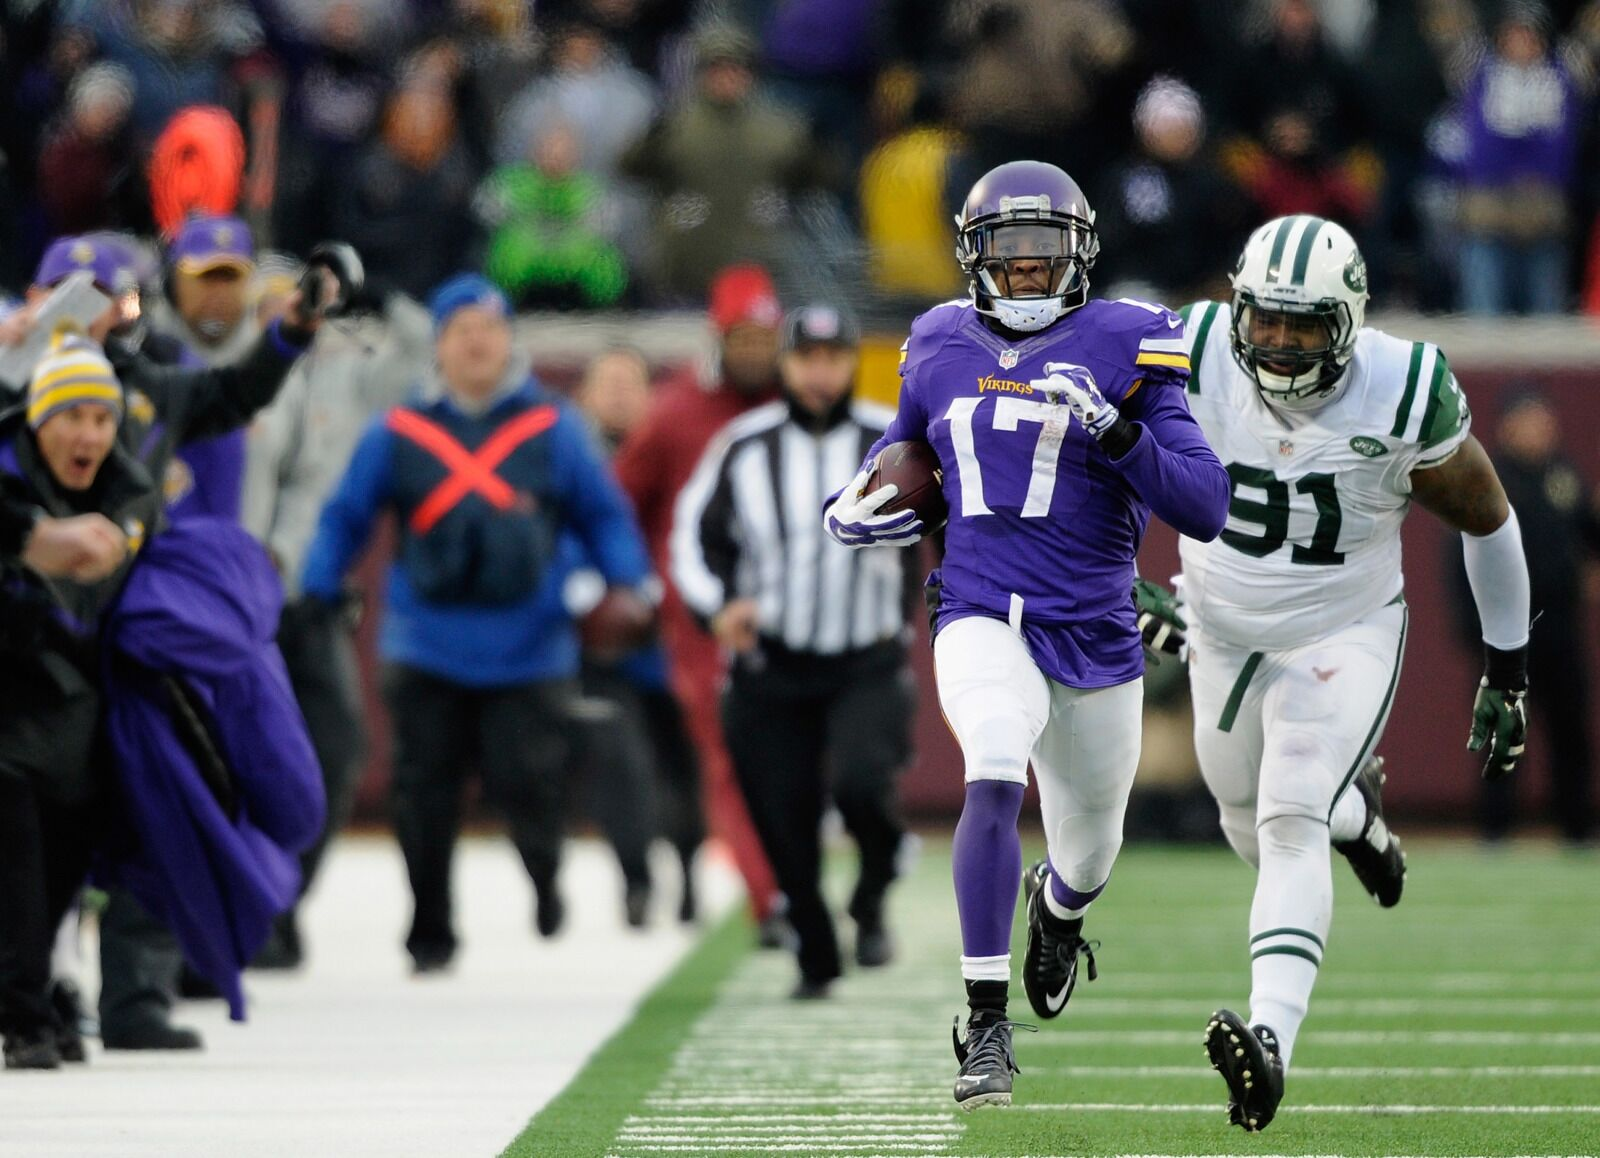 Flashback Friday: Vikings get overtime win over the Jets in 2014